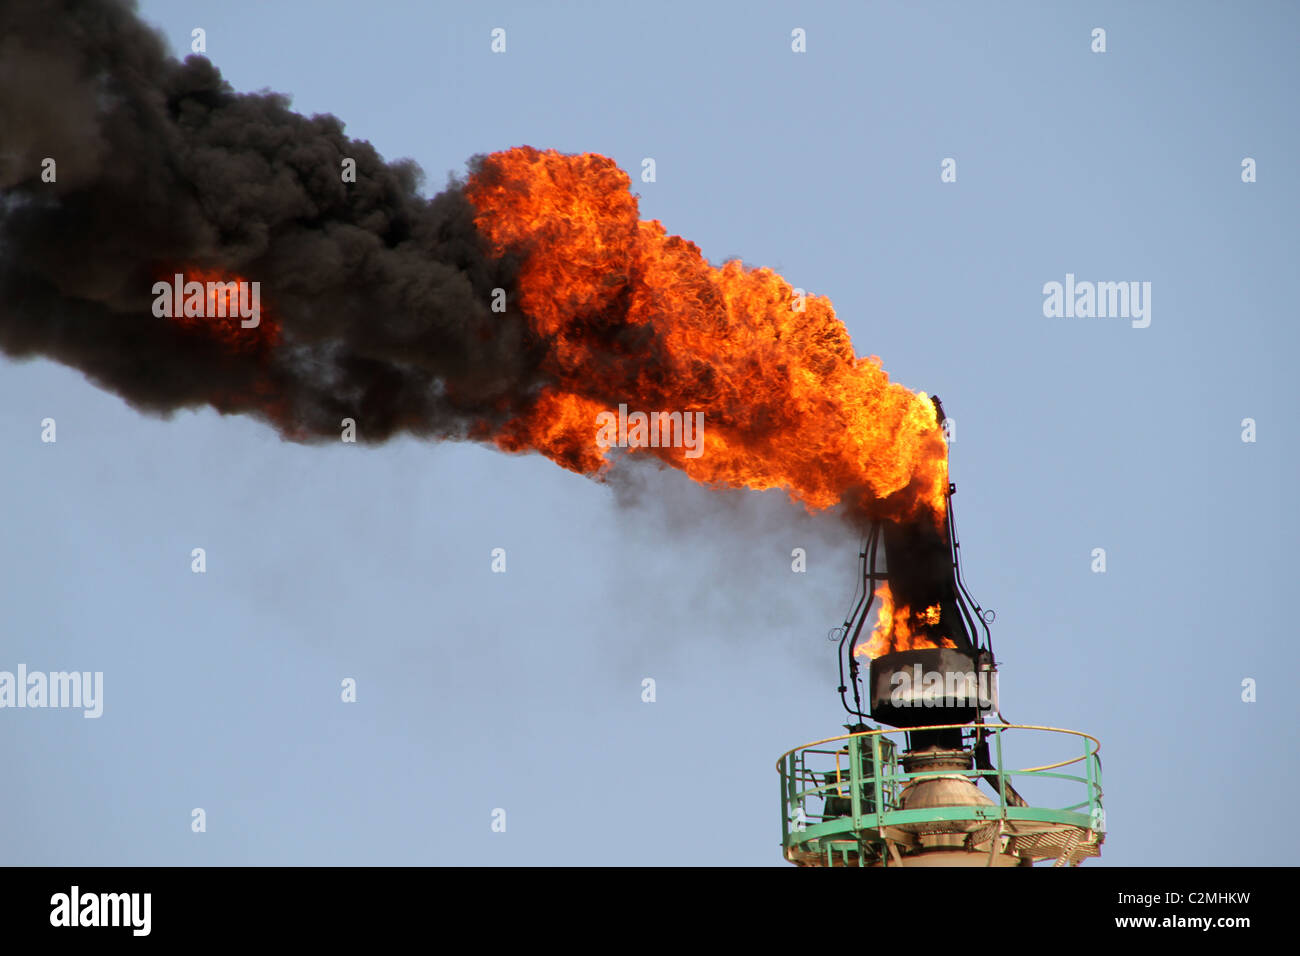 Huge flames leak from a gas pipe Stock Photo